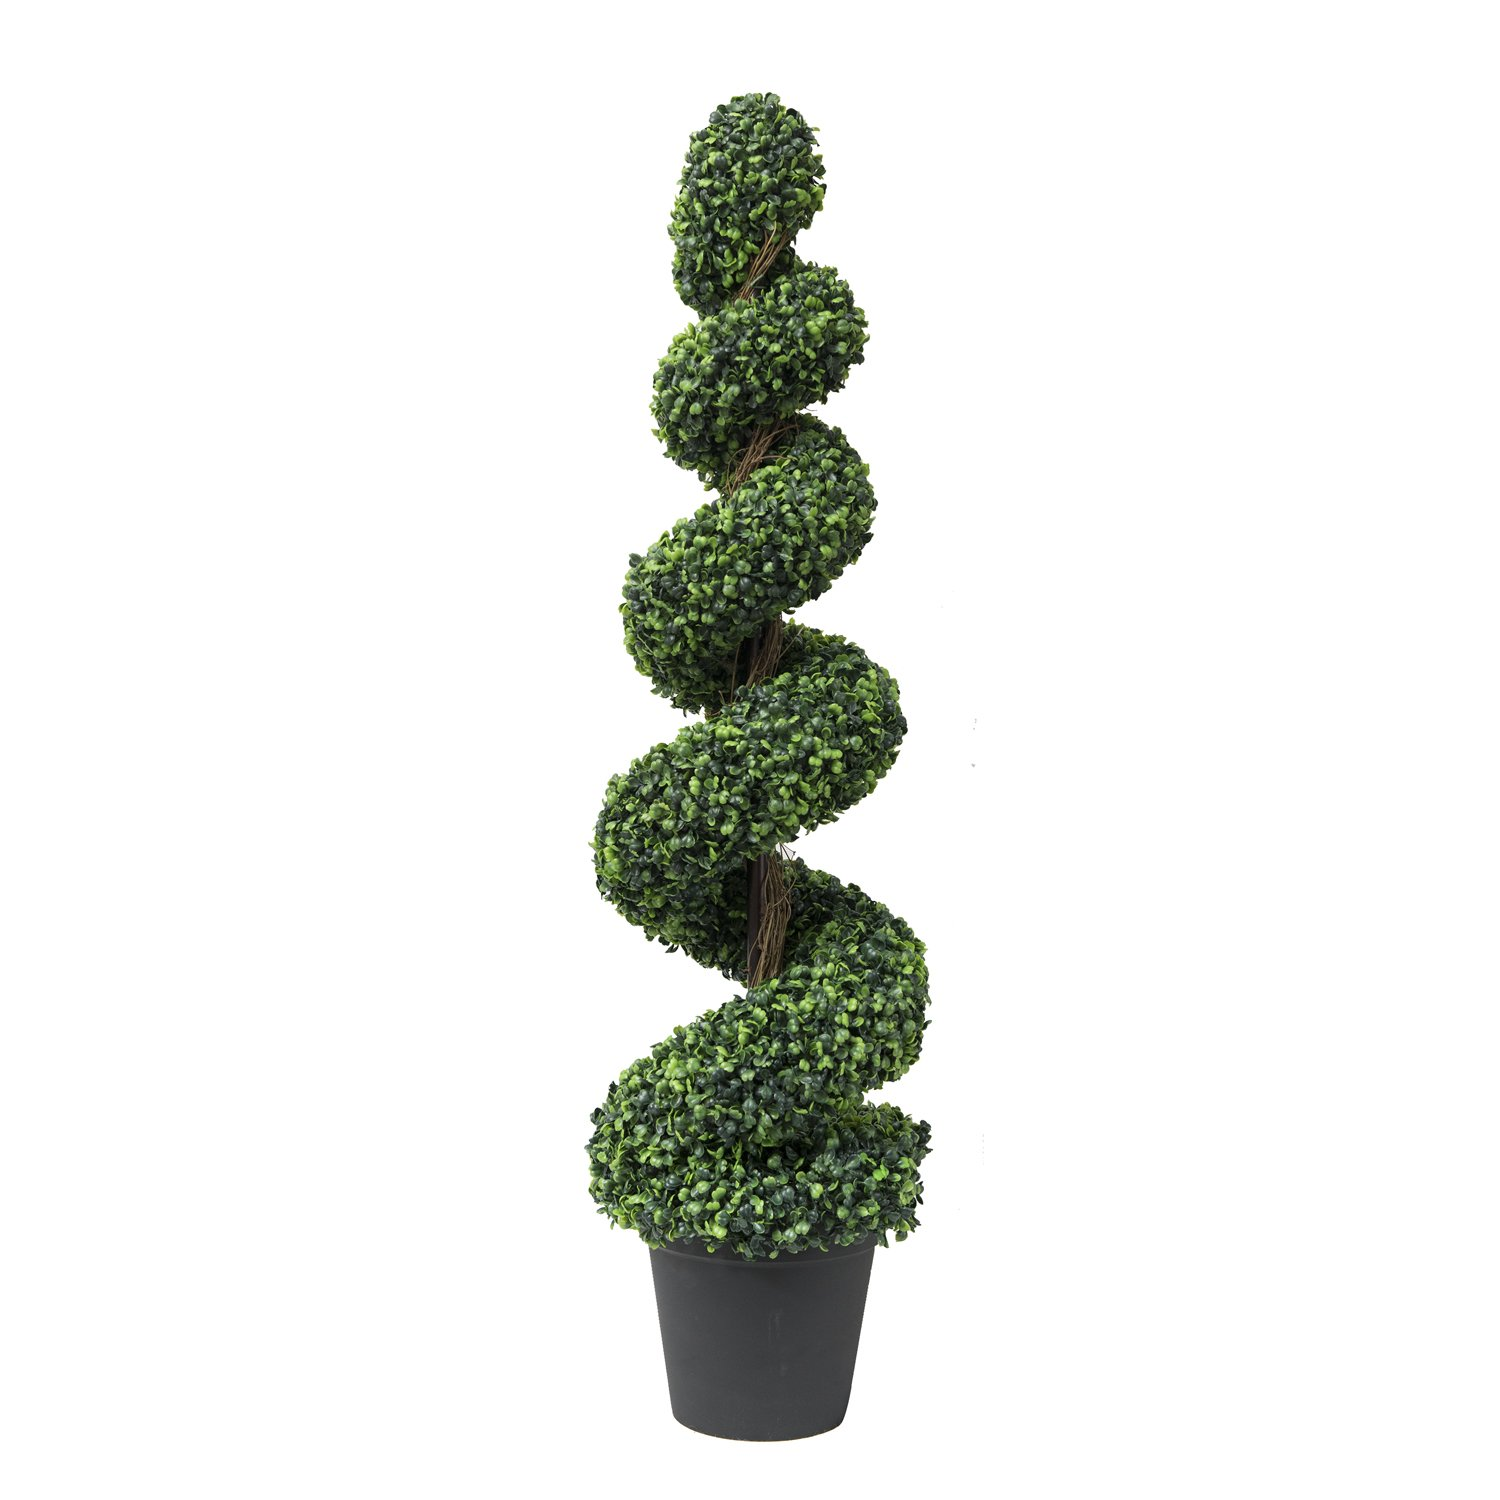 Cheap Outdoor Christmas Topiary Find Outdoor Christmas Topiary Deals On Line At Alibaba Com